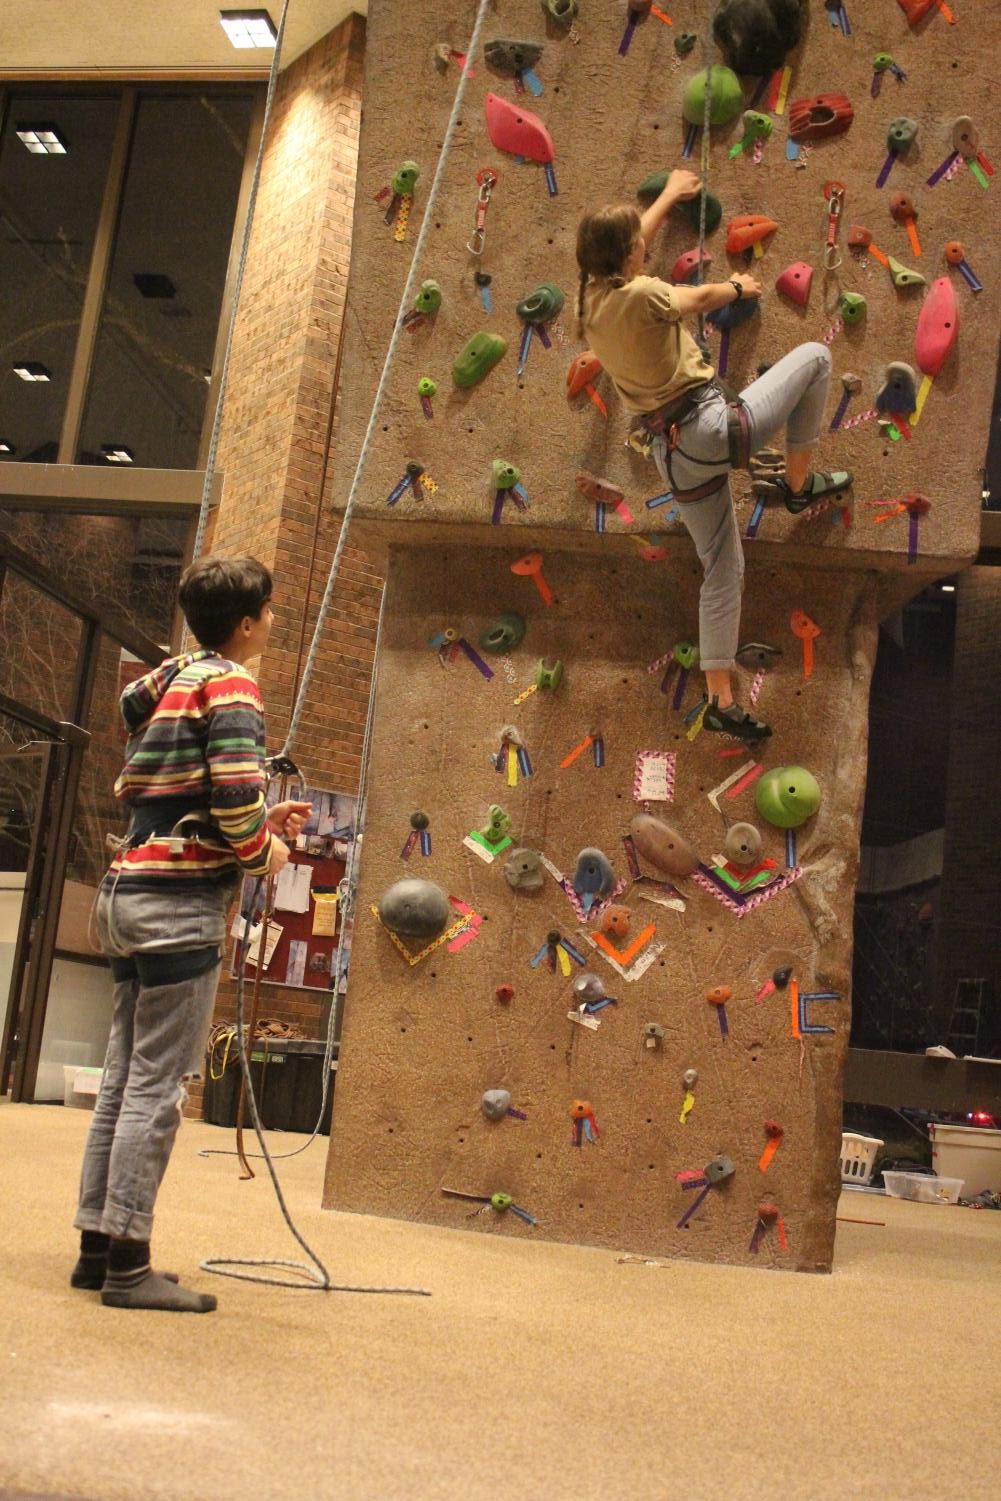 College fourth-year Julia Butler and College first-year Mira Newman at the Oberlin College Climbing Wall.